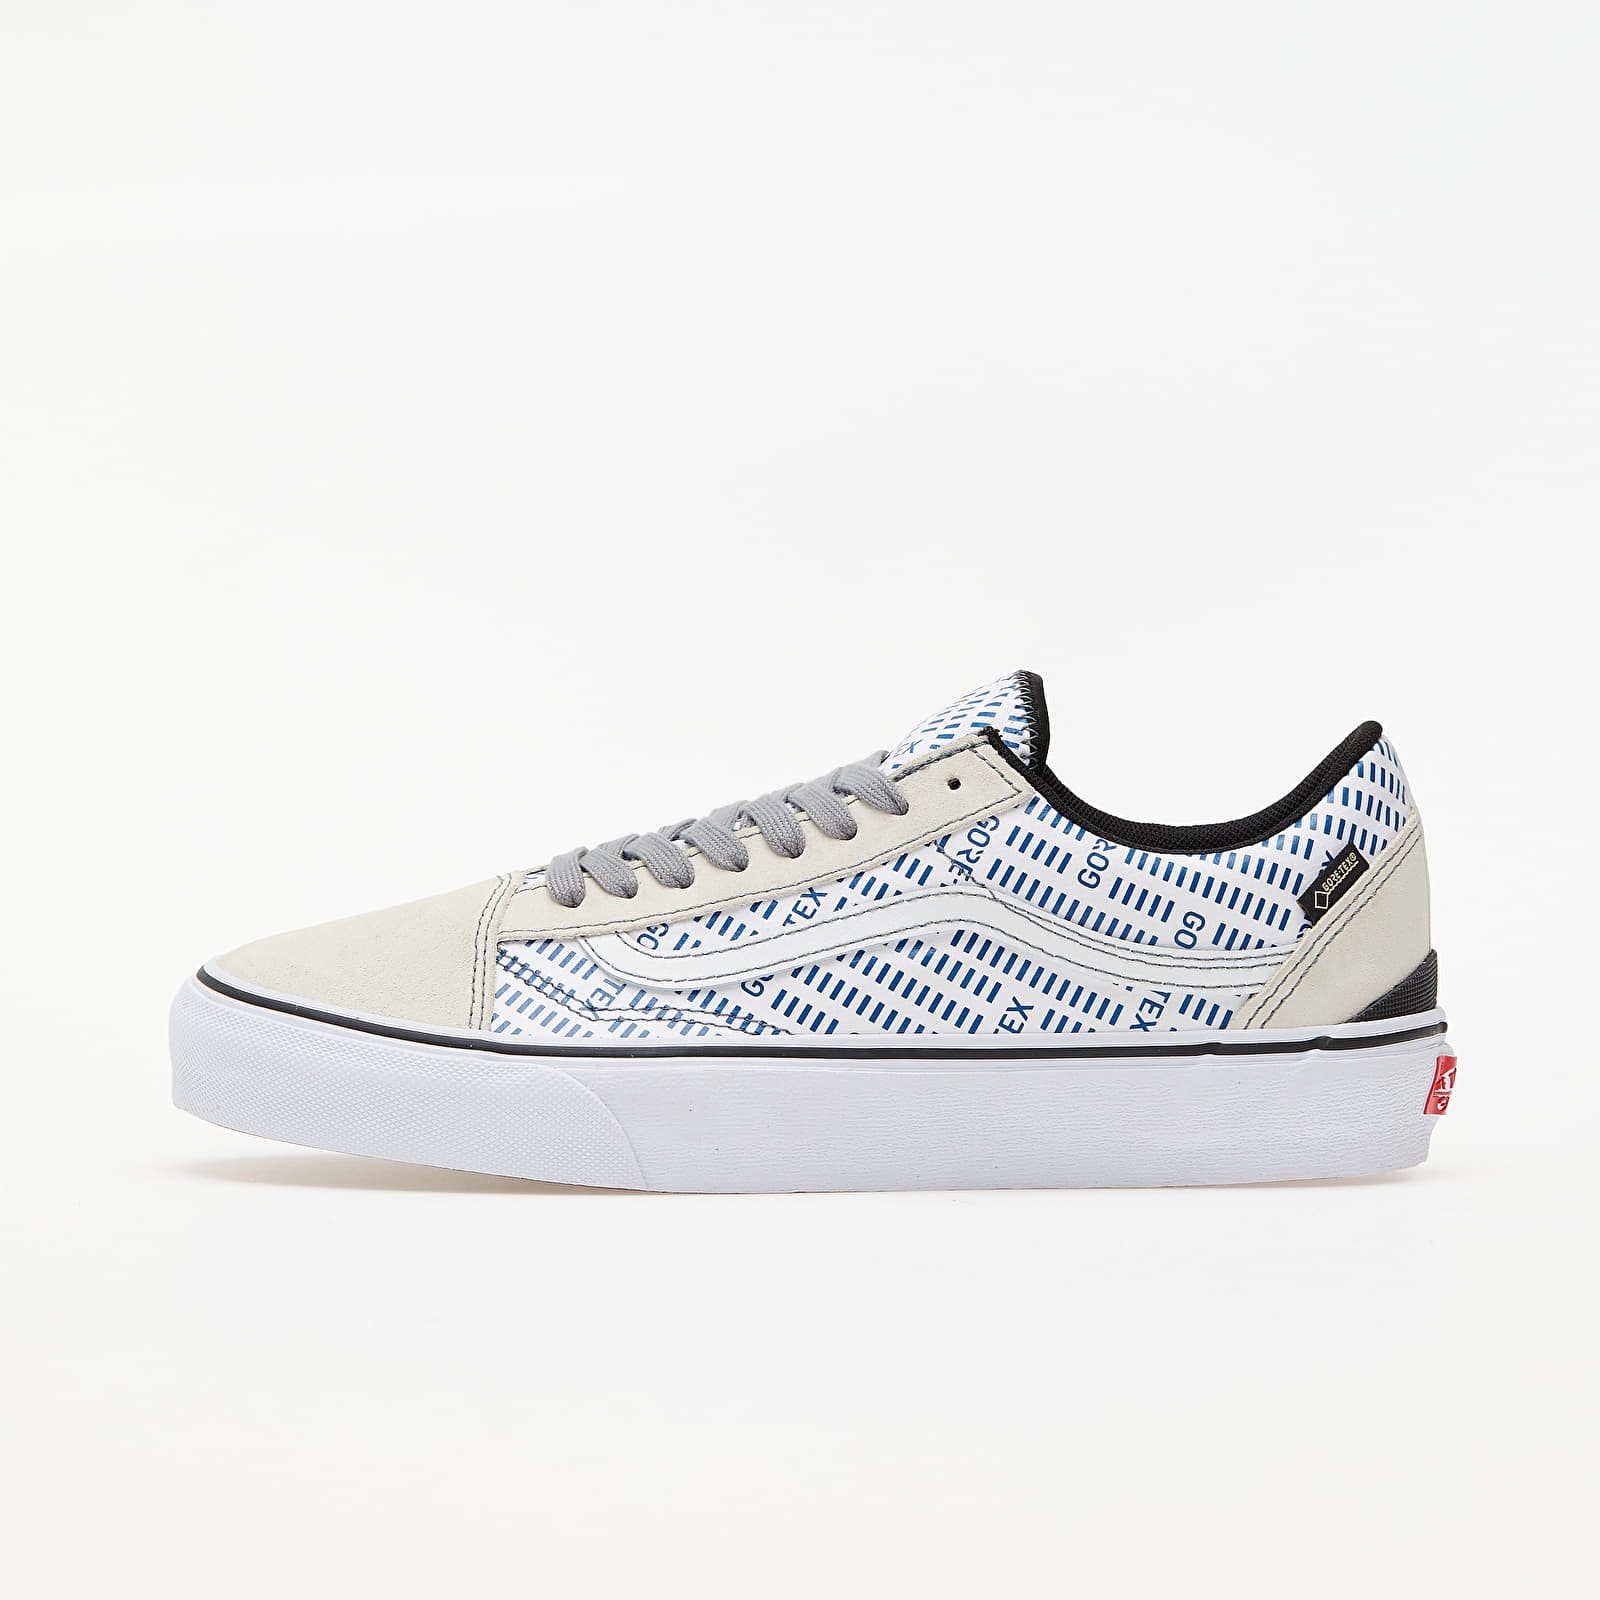 Men's shoes Vans Old Skool Gore-Tex White/ Blue